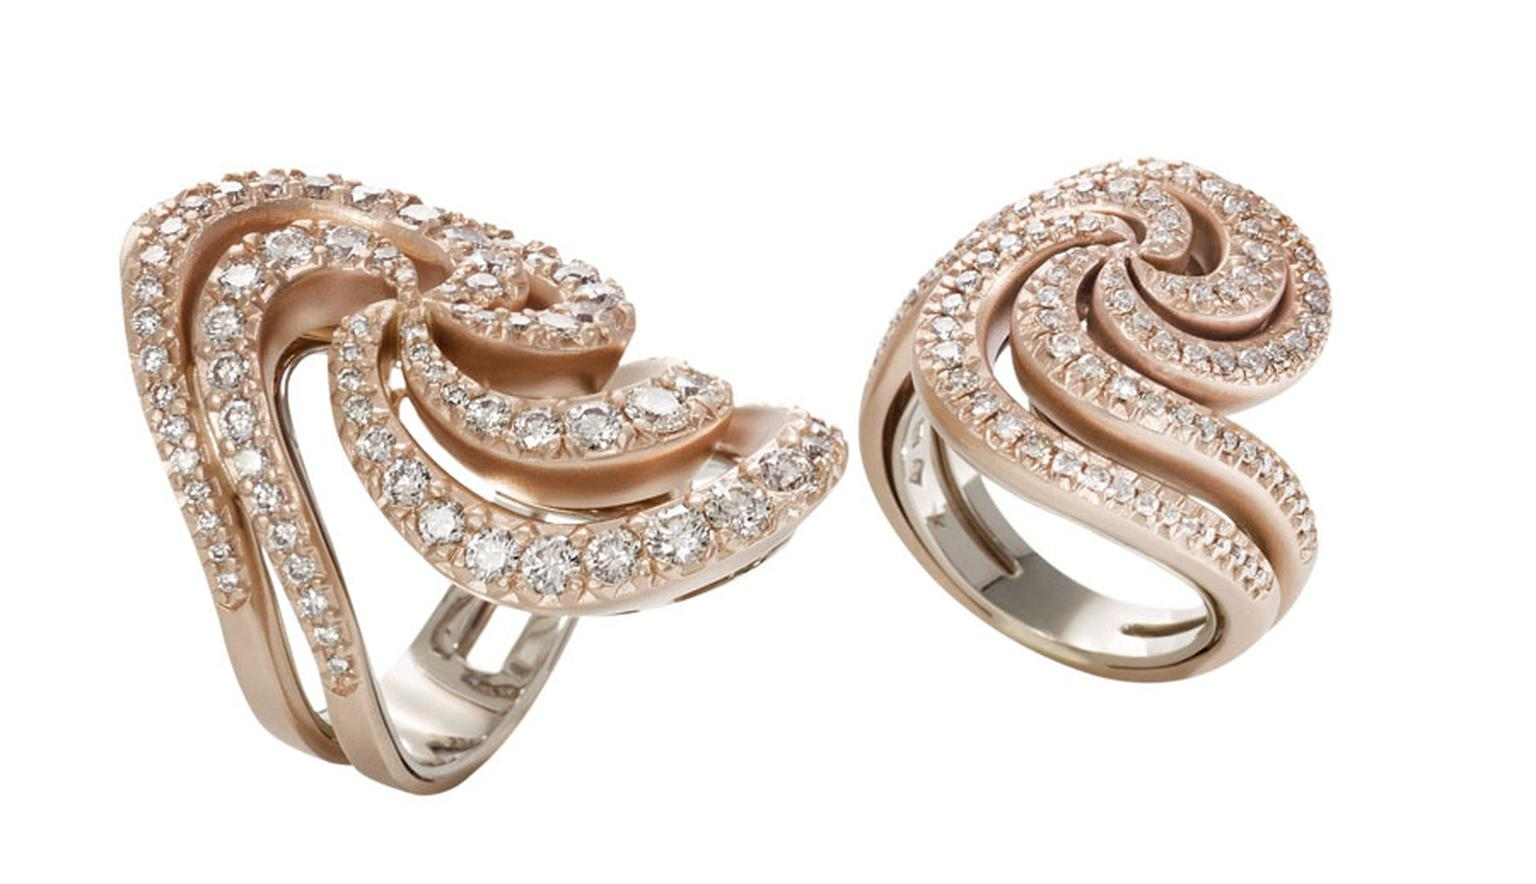 H-Stern-Rings-in-rose-and-Noble-Gold-with-diamonds-